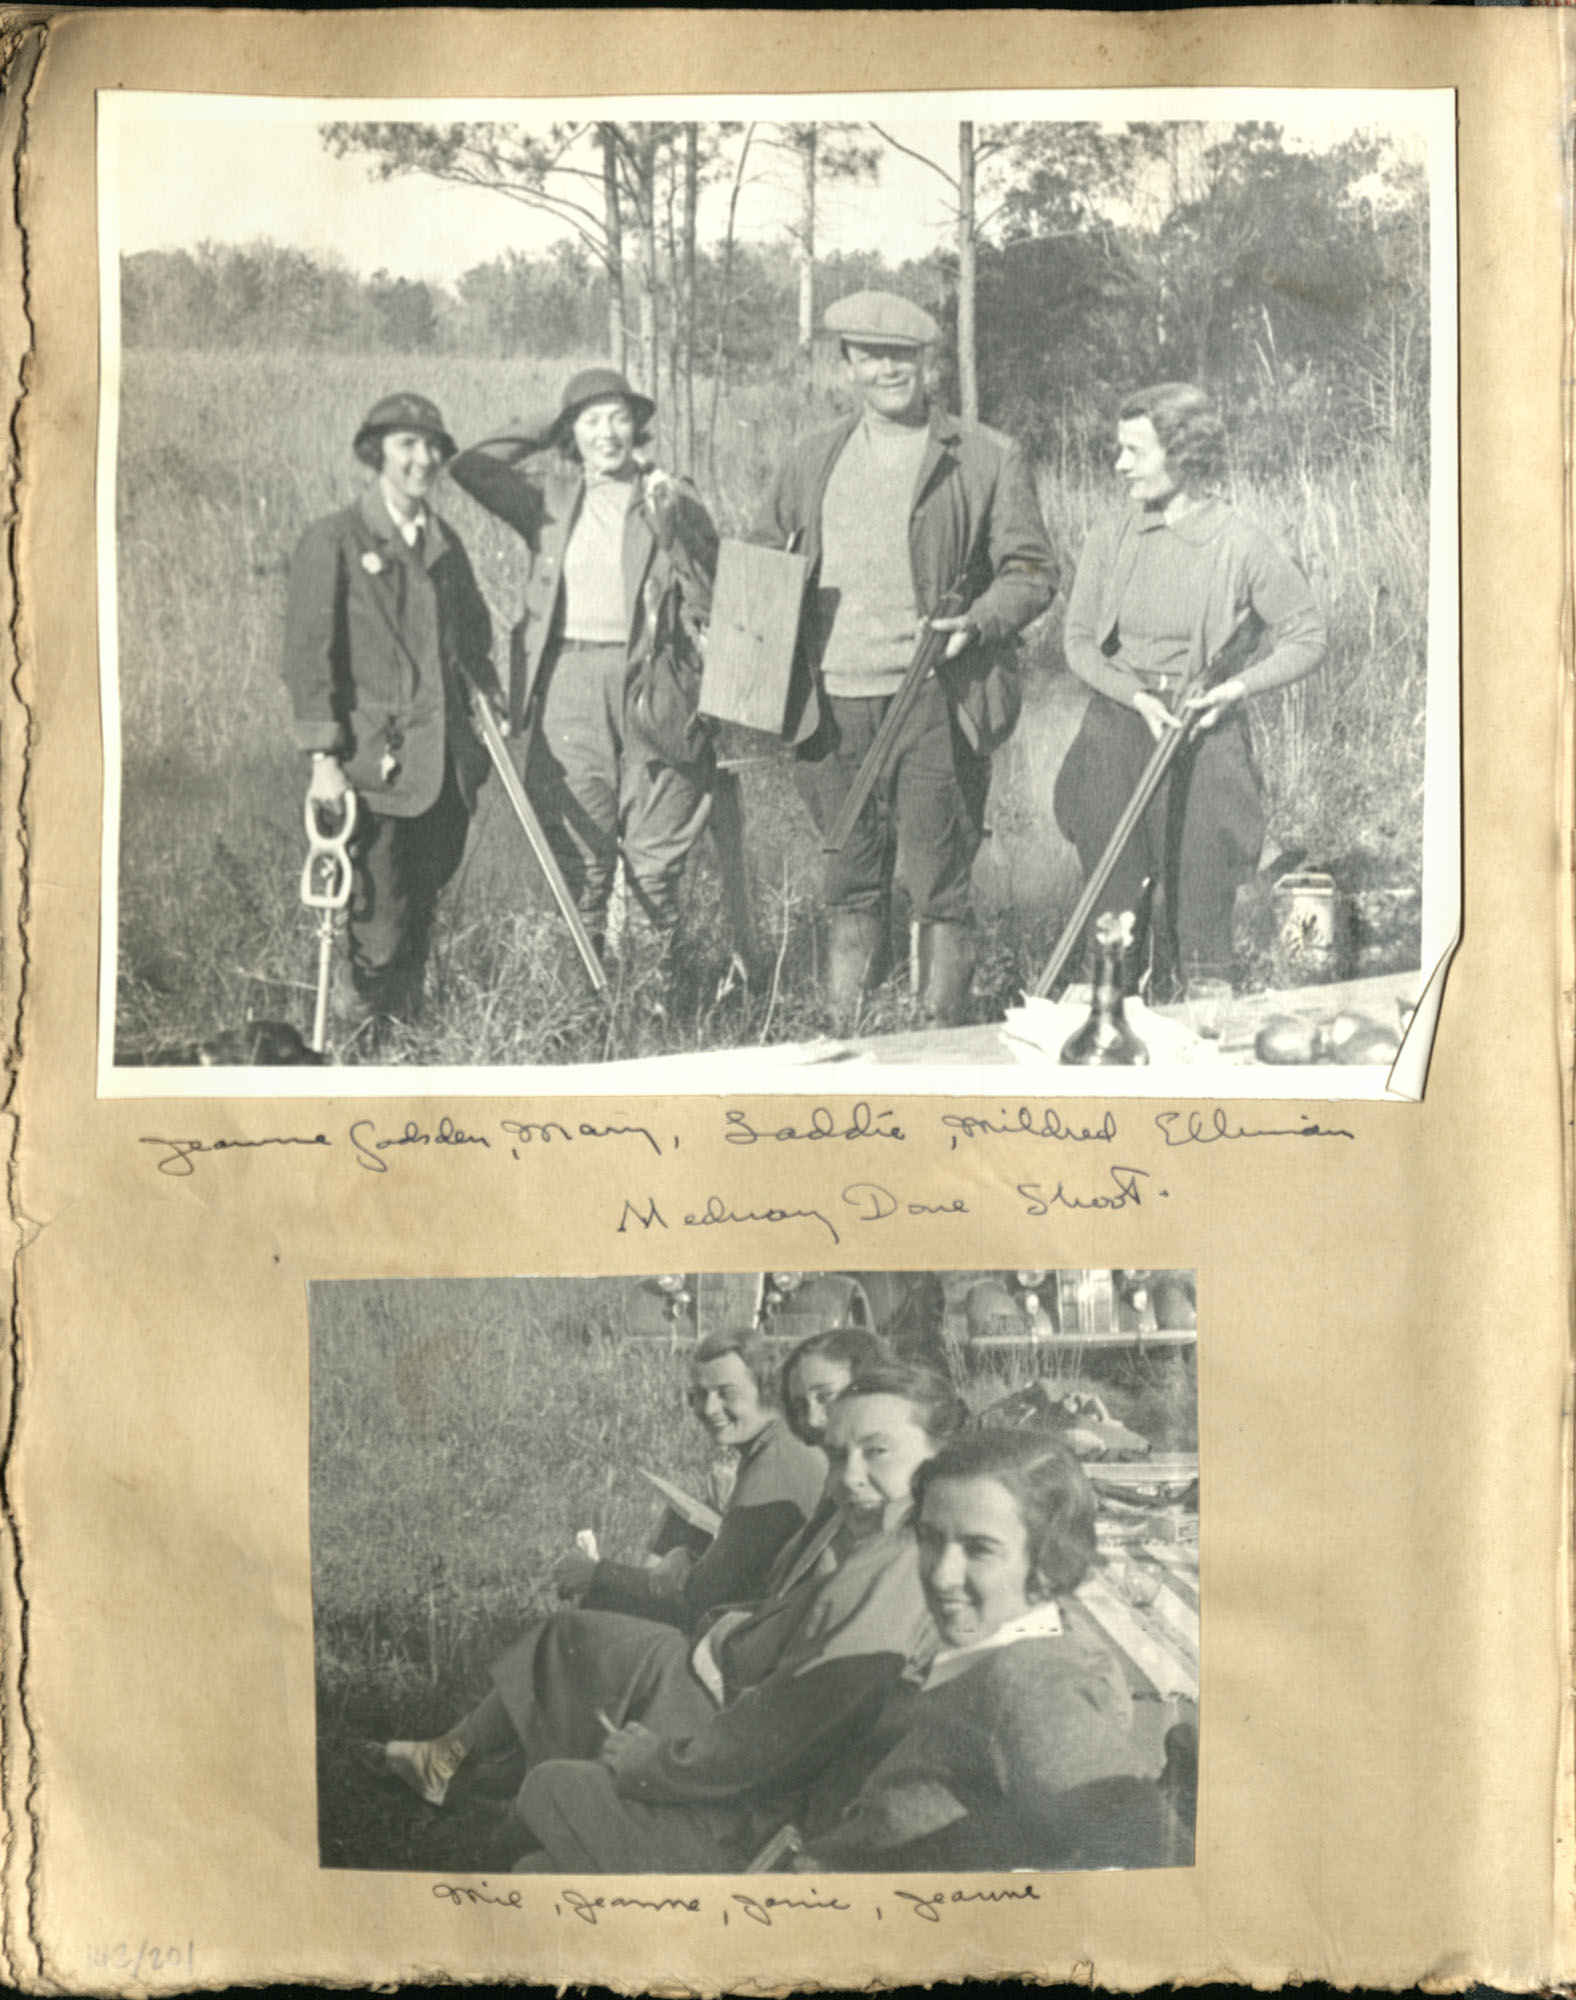 Early Medway and travels album, 1929-1937, page 142